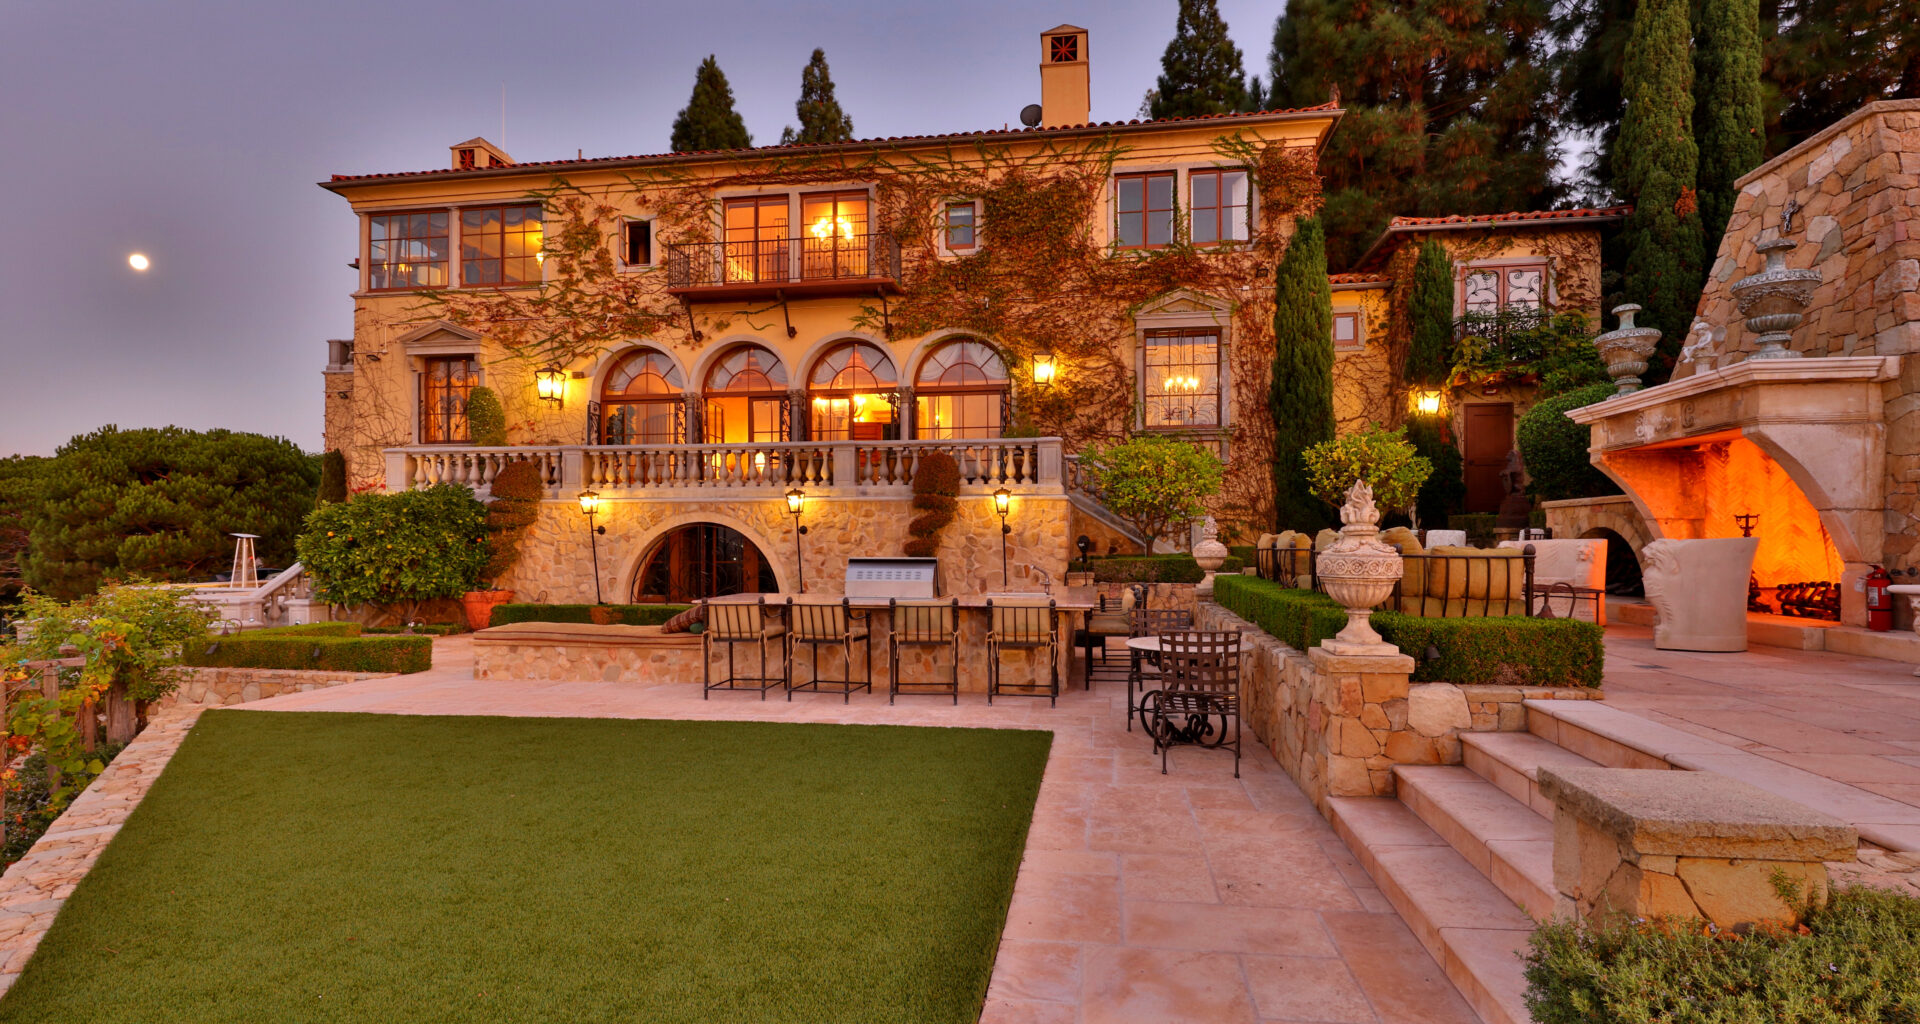 What Does $12 Million Buy in the South Bay